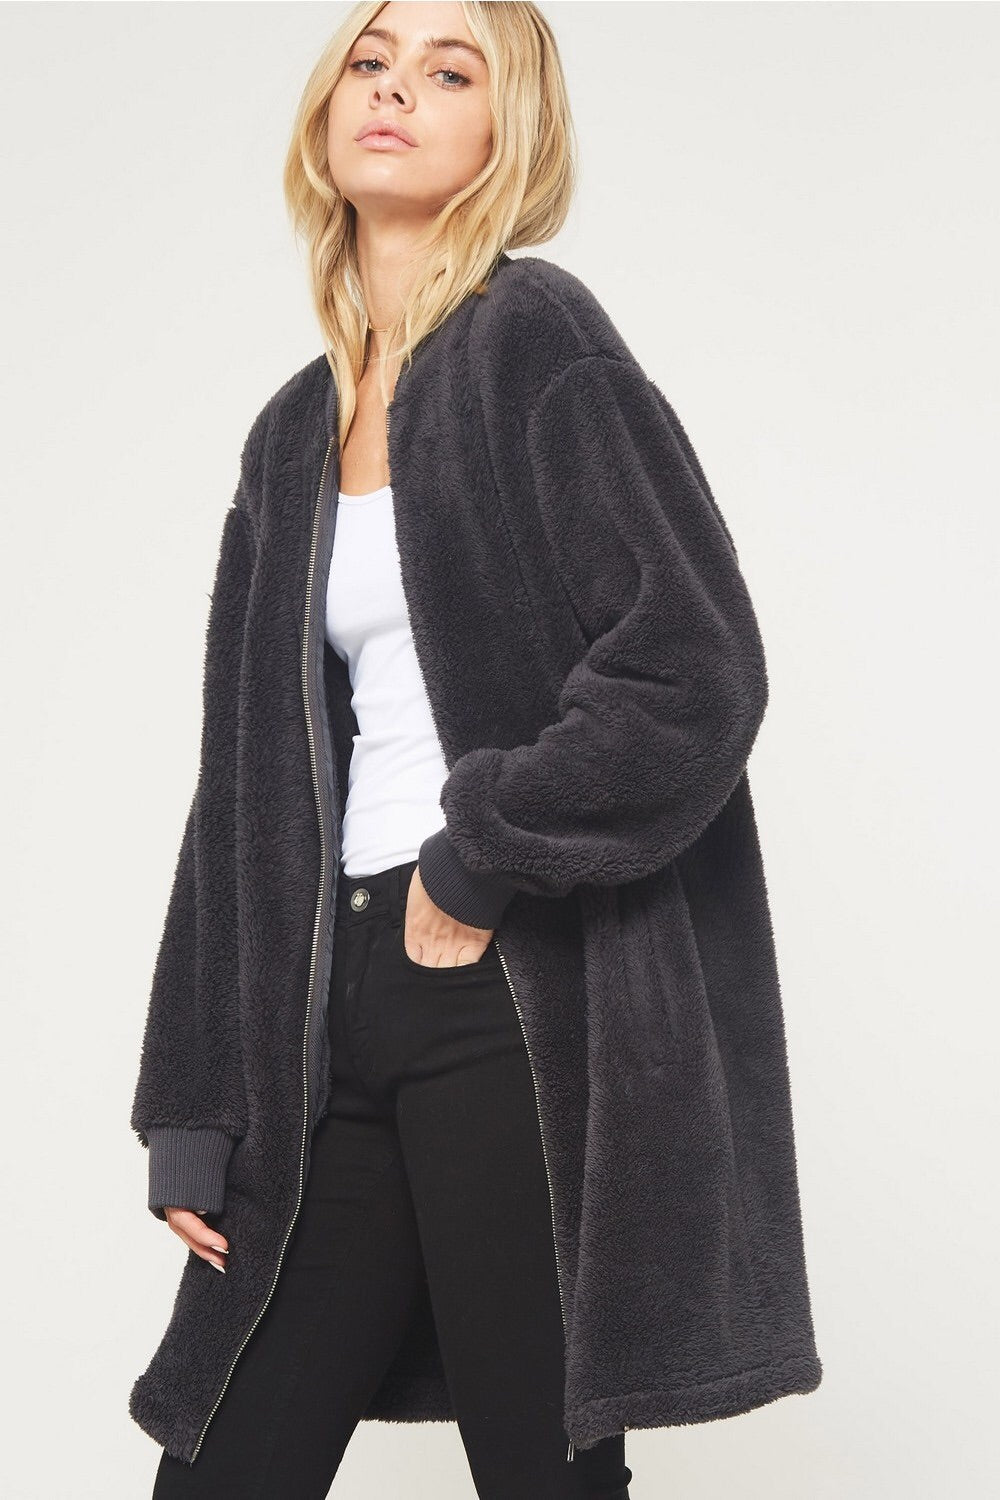 Faux Fur Zipper Coat